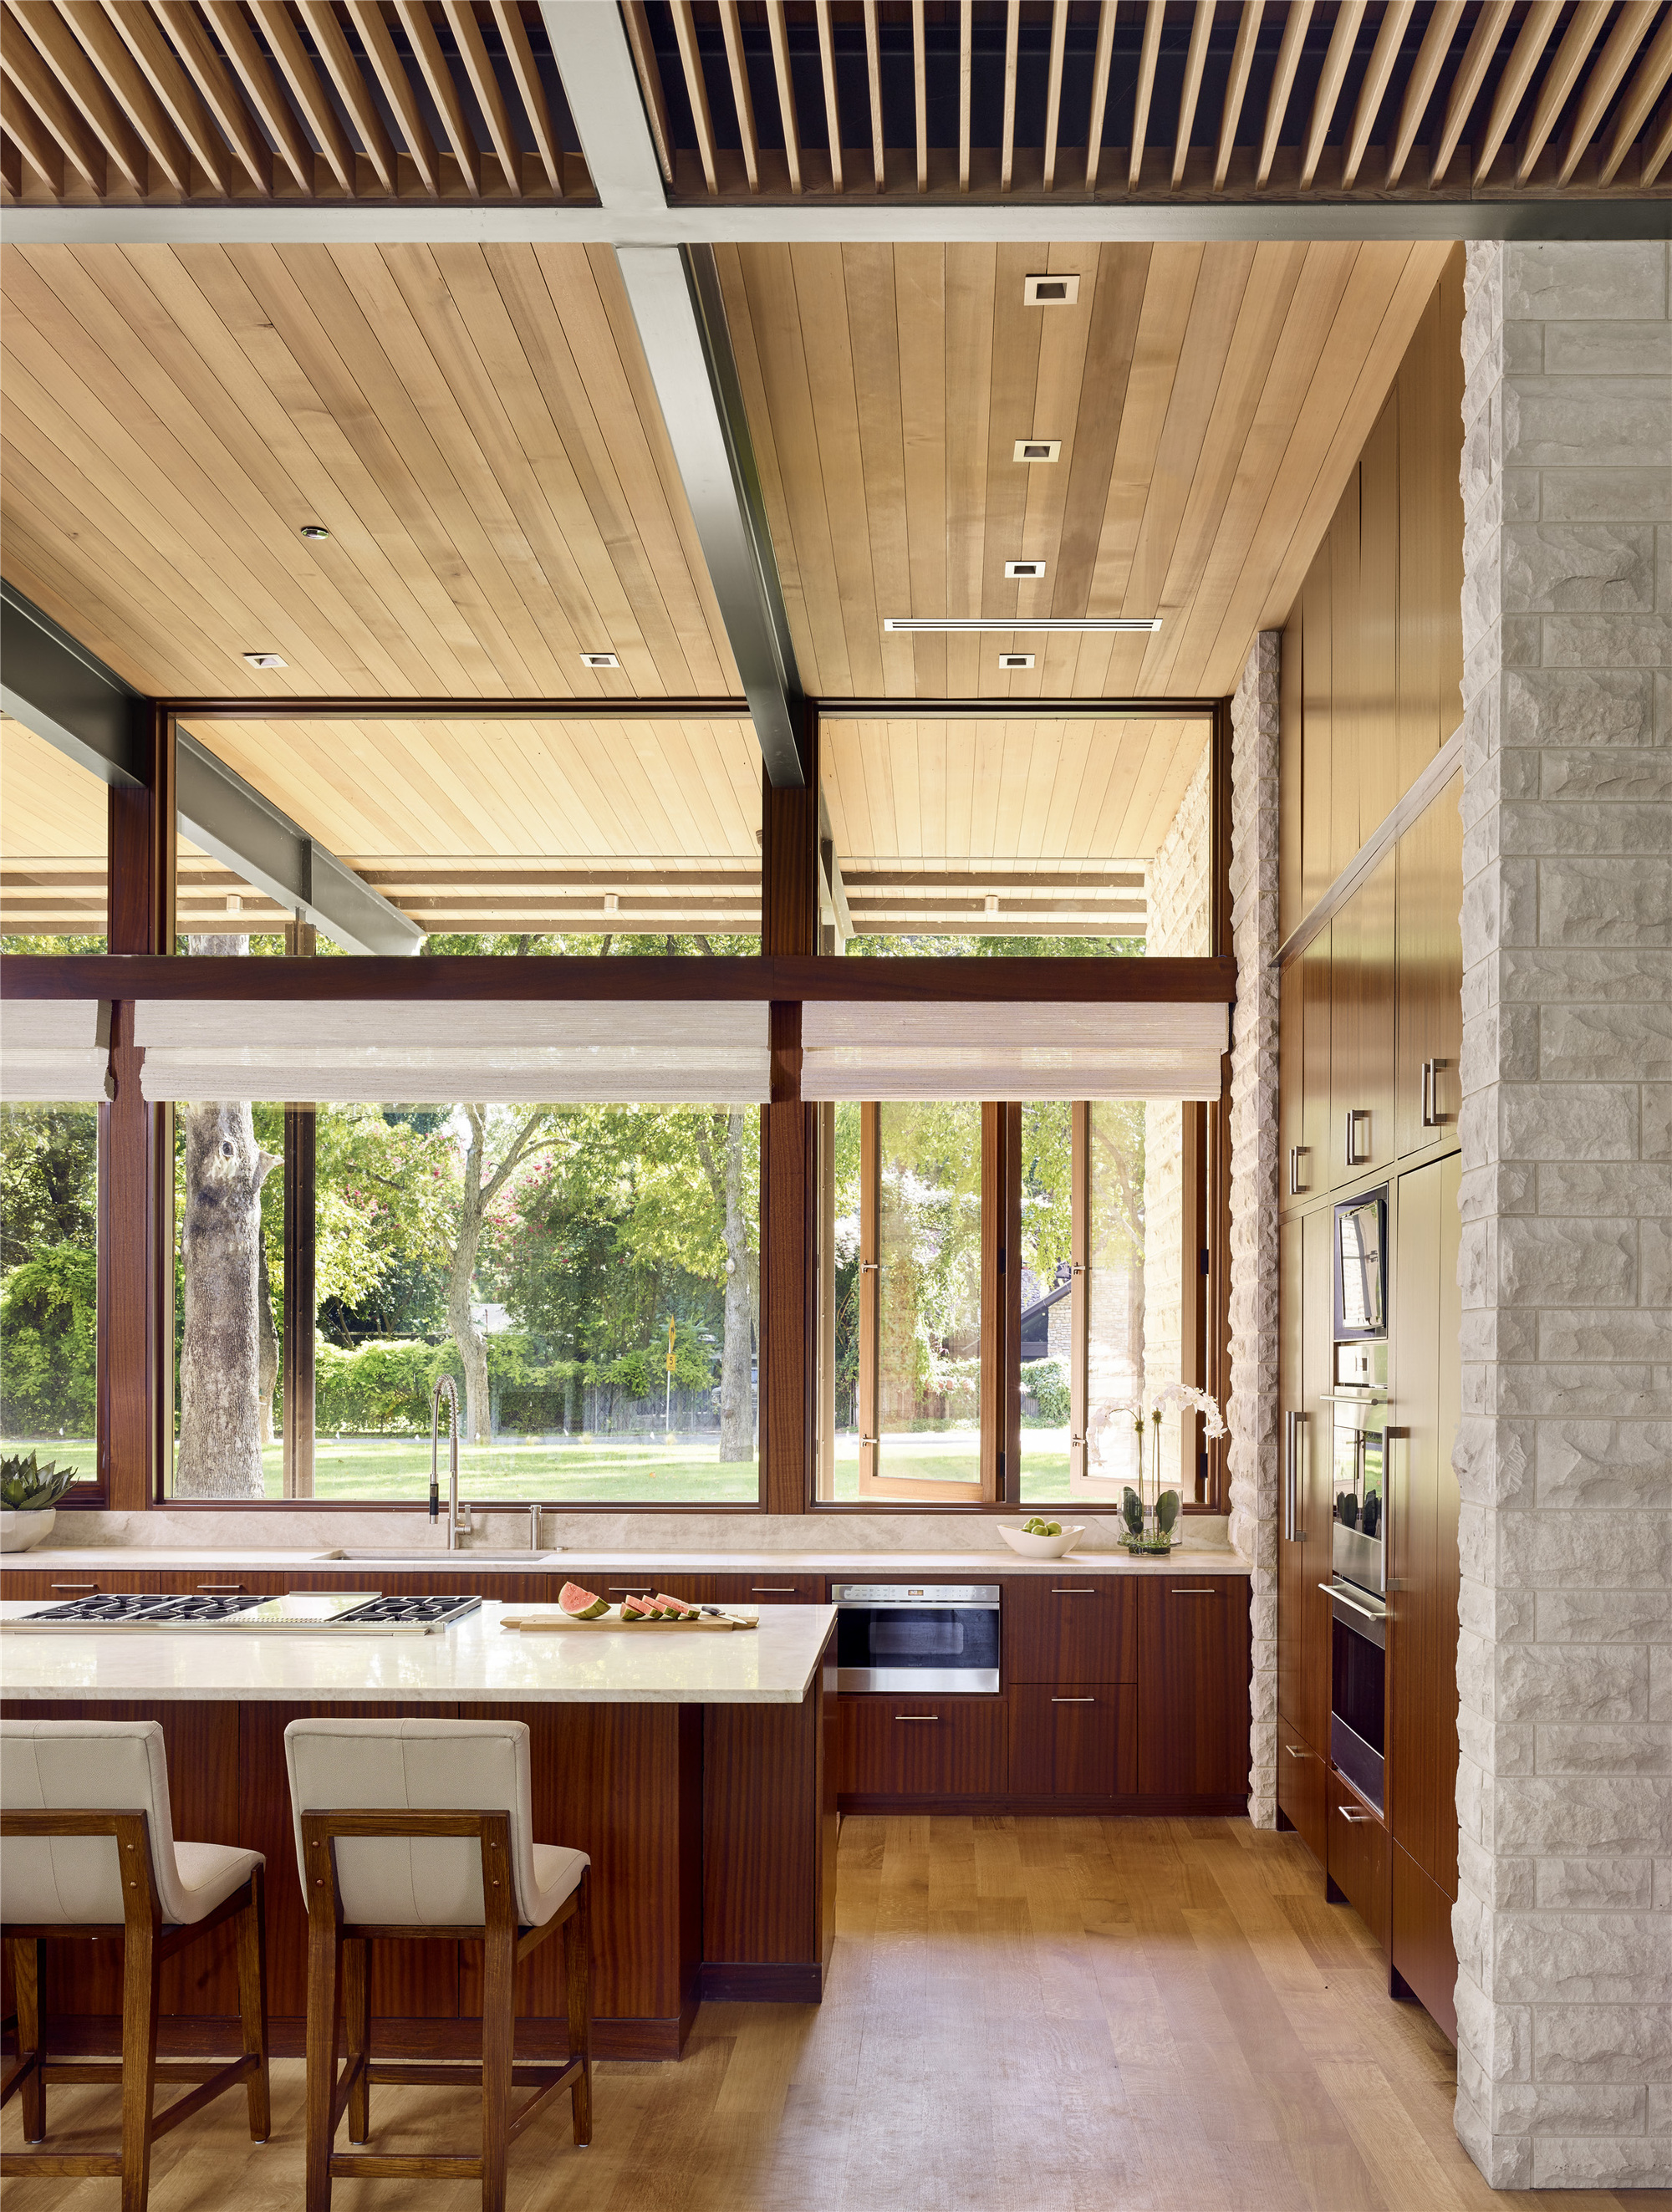 A Parallel Architecture gallery of lake austin residence / a parallel architecture - 14